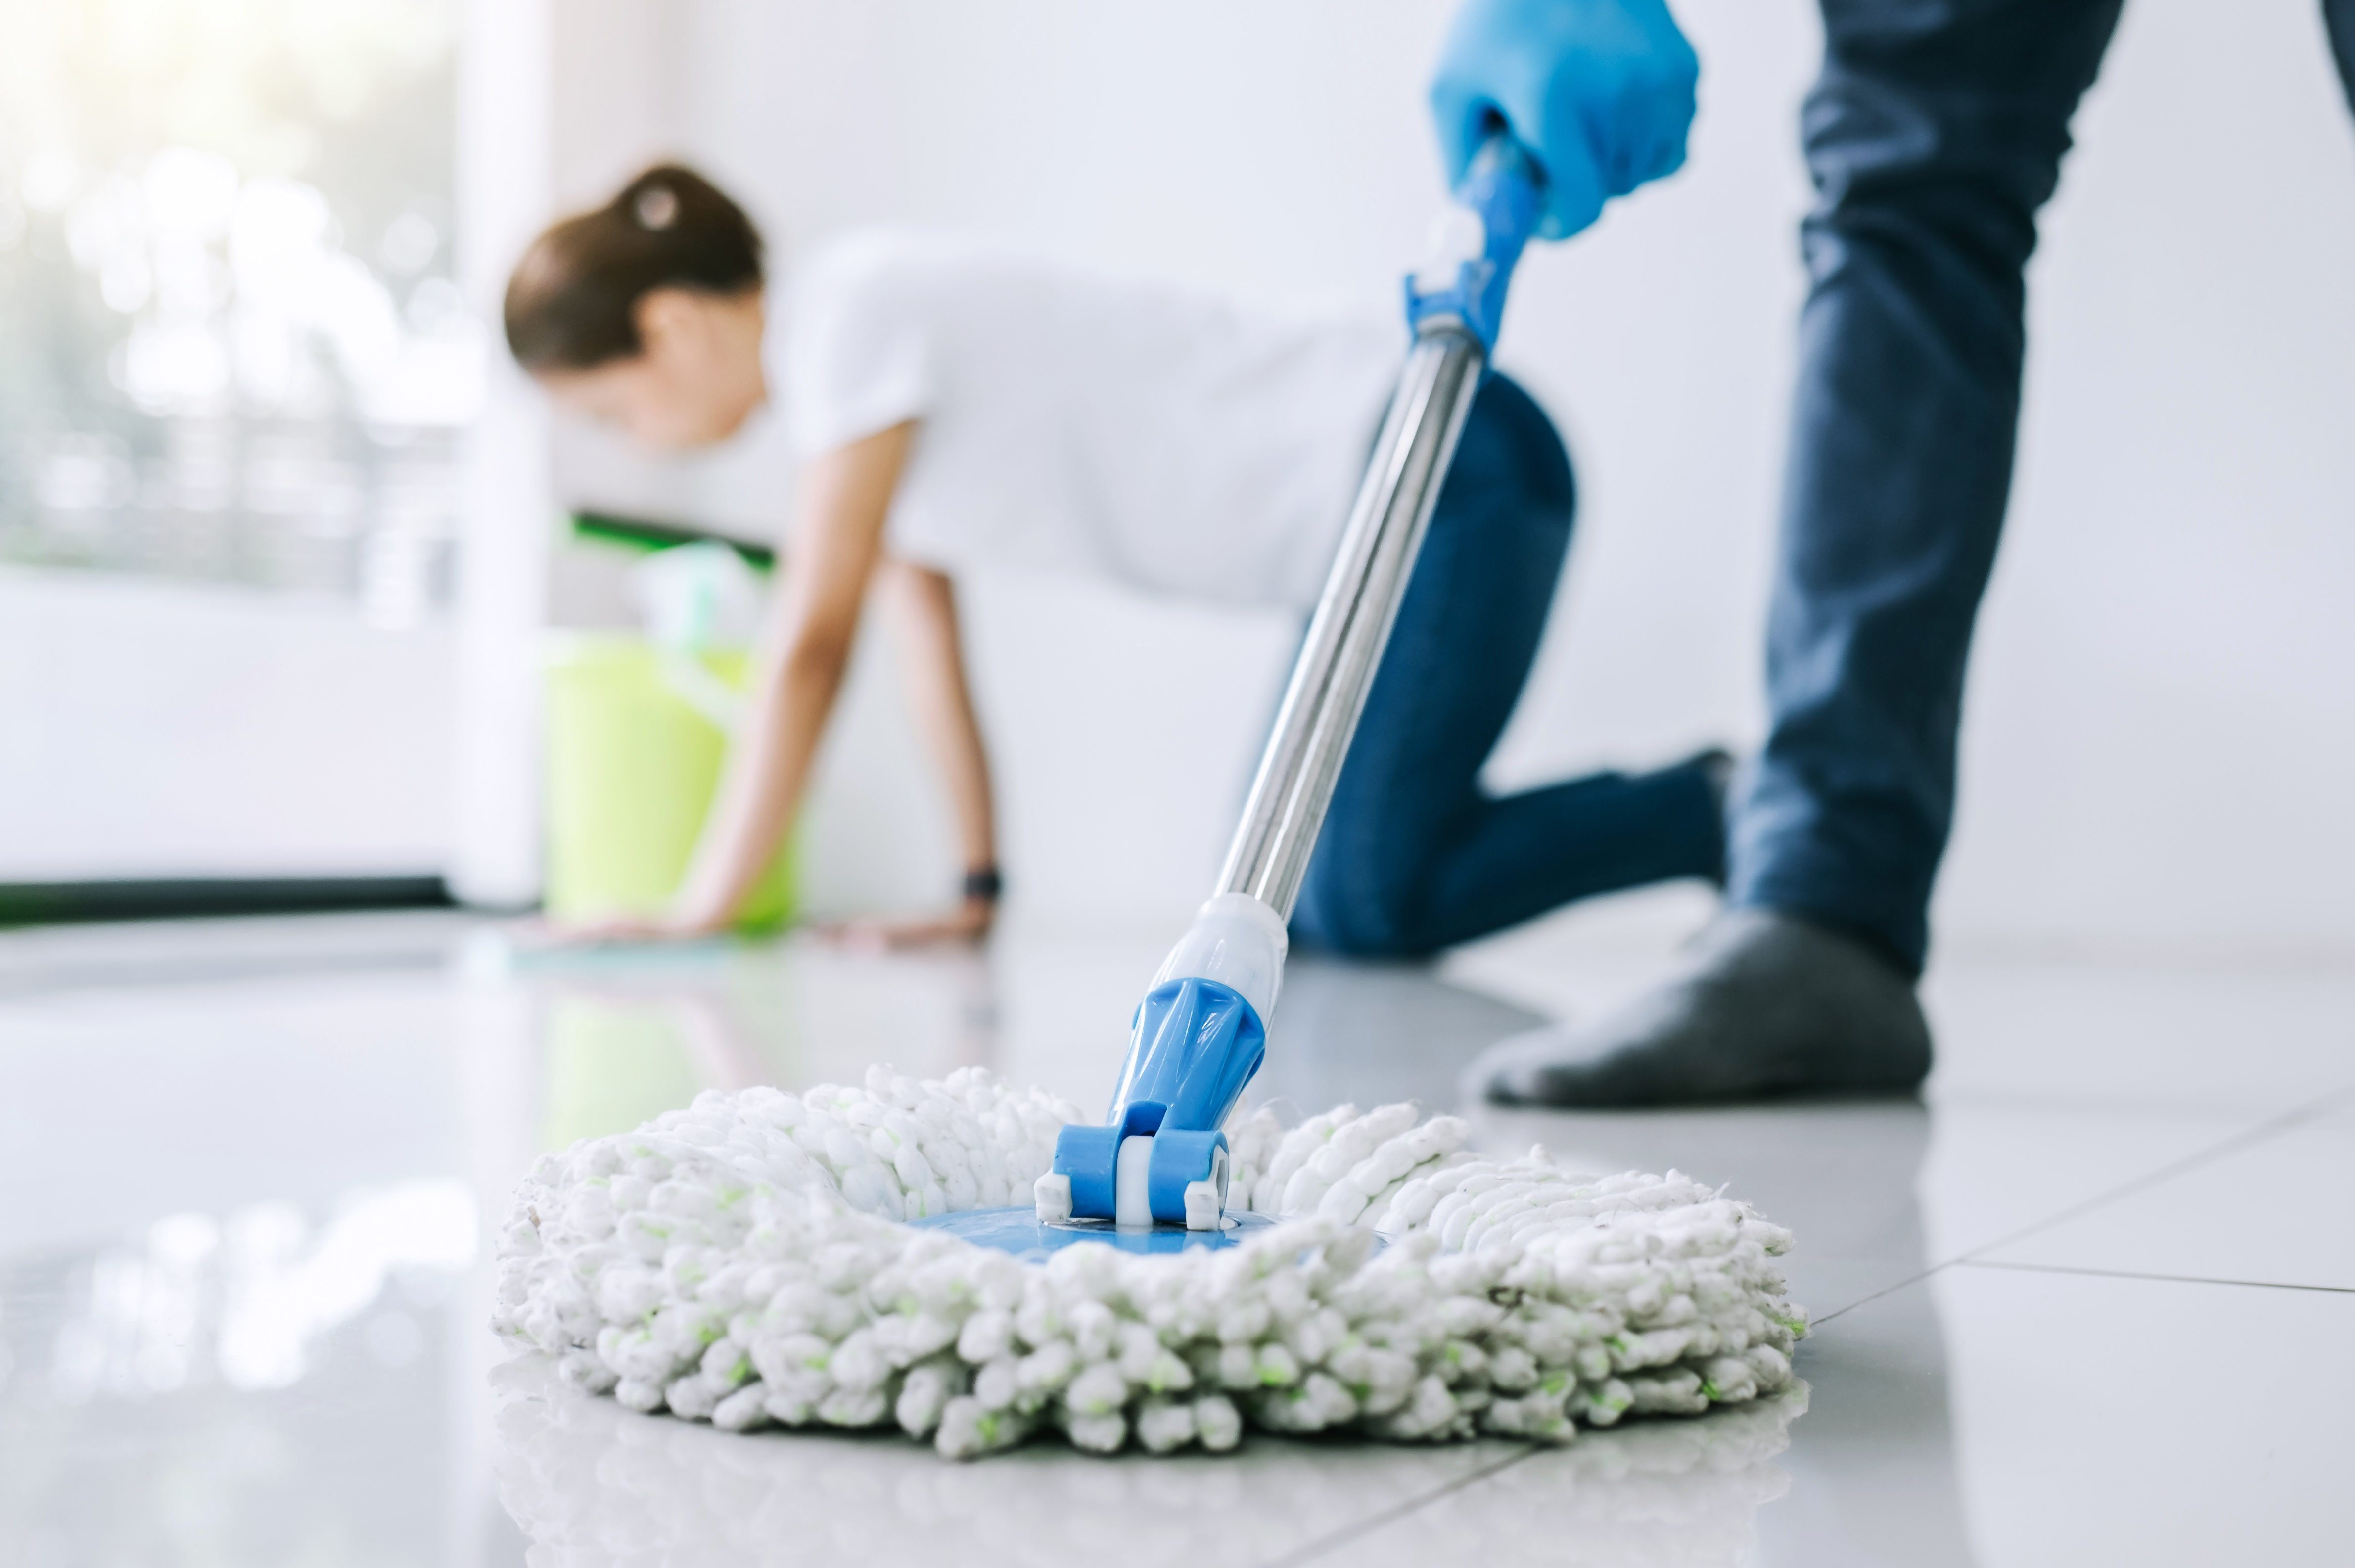 Low Section Of Man Cleaning Floor With Mop